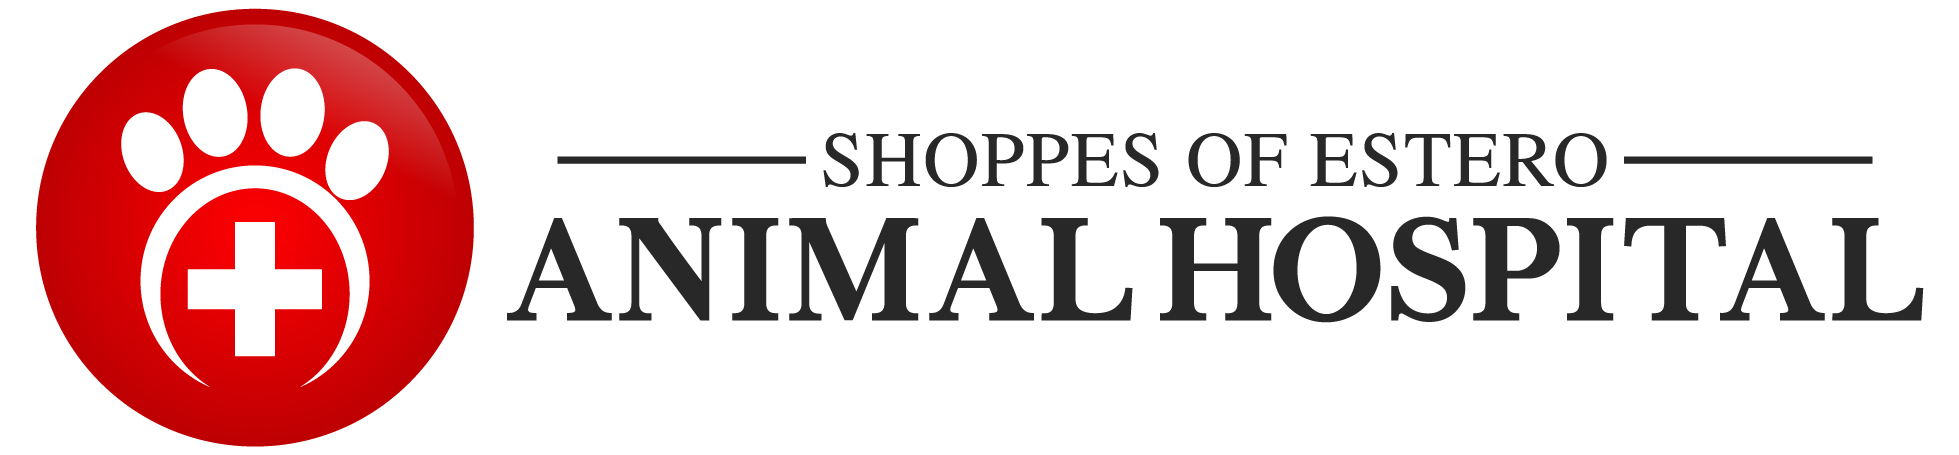 Shoppes of Estero Animal Hospital